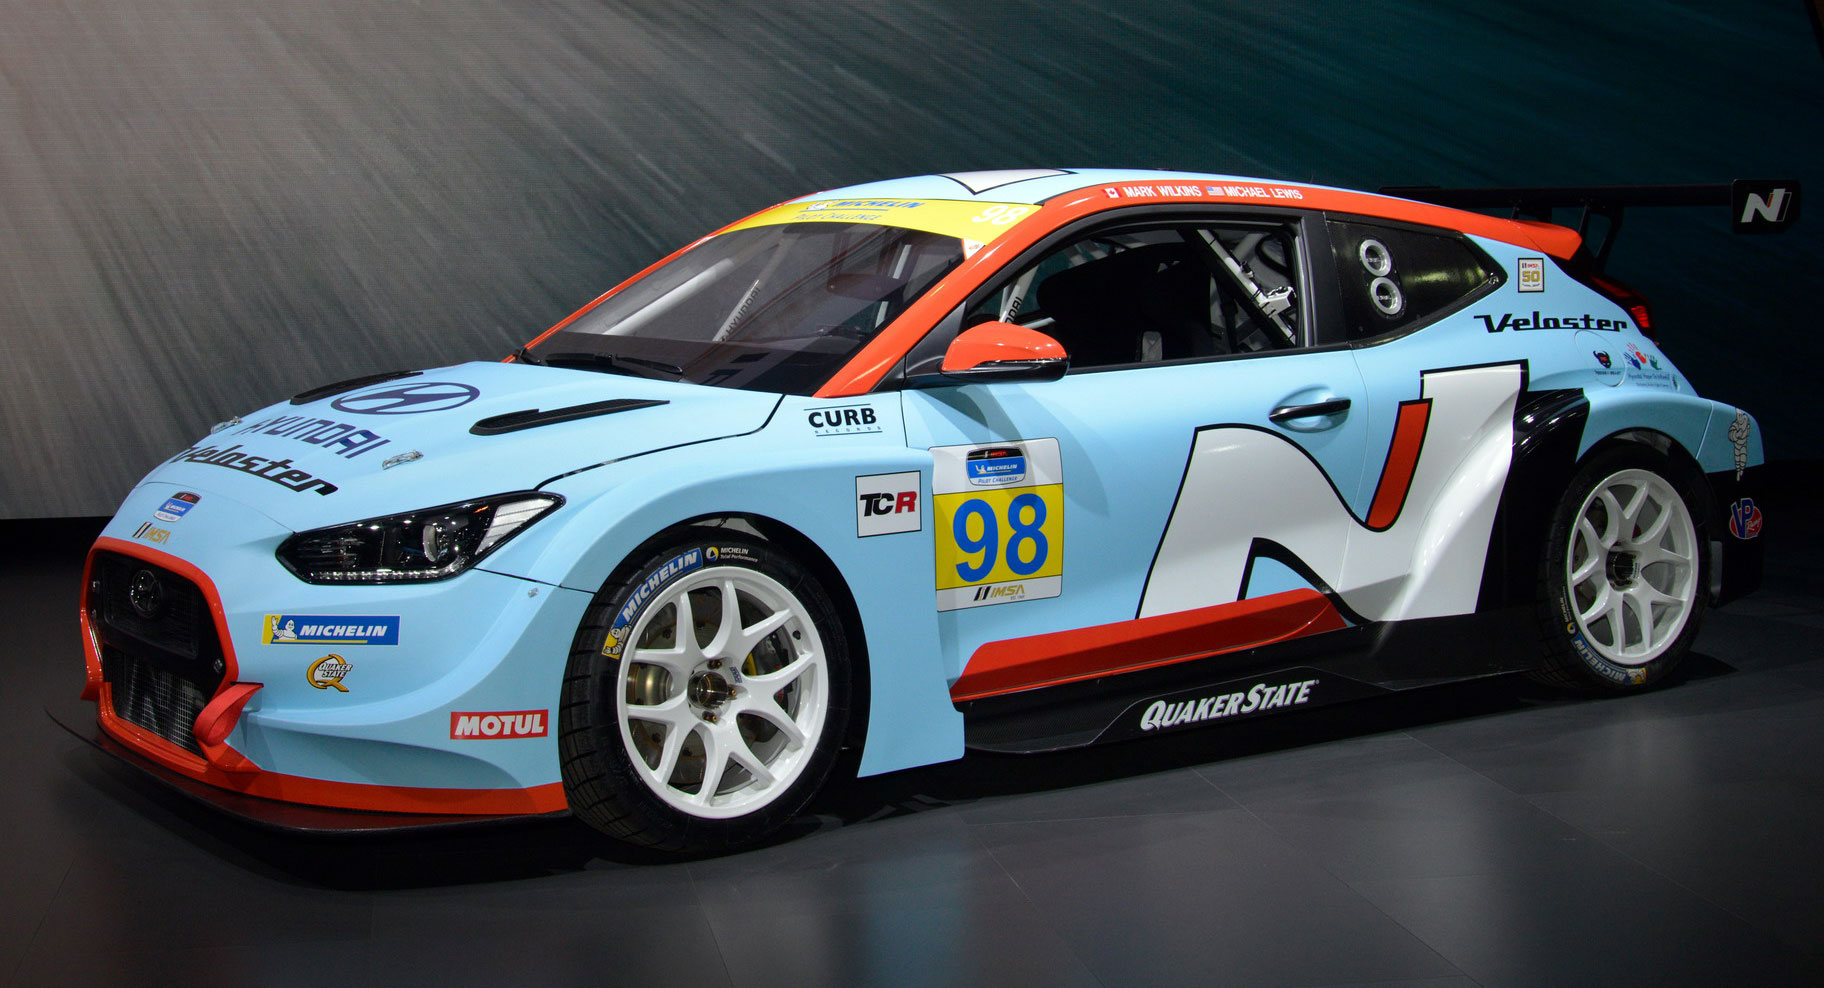 Used Hyundai Veloster >> Hyundai Gives Veloster N TCR Racing Pedigree With 350 Horses | Carscoops